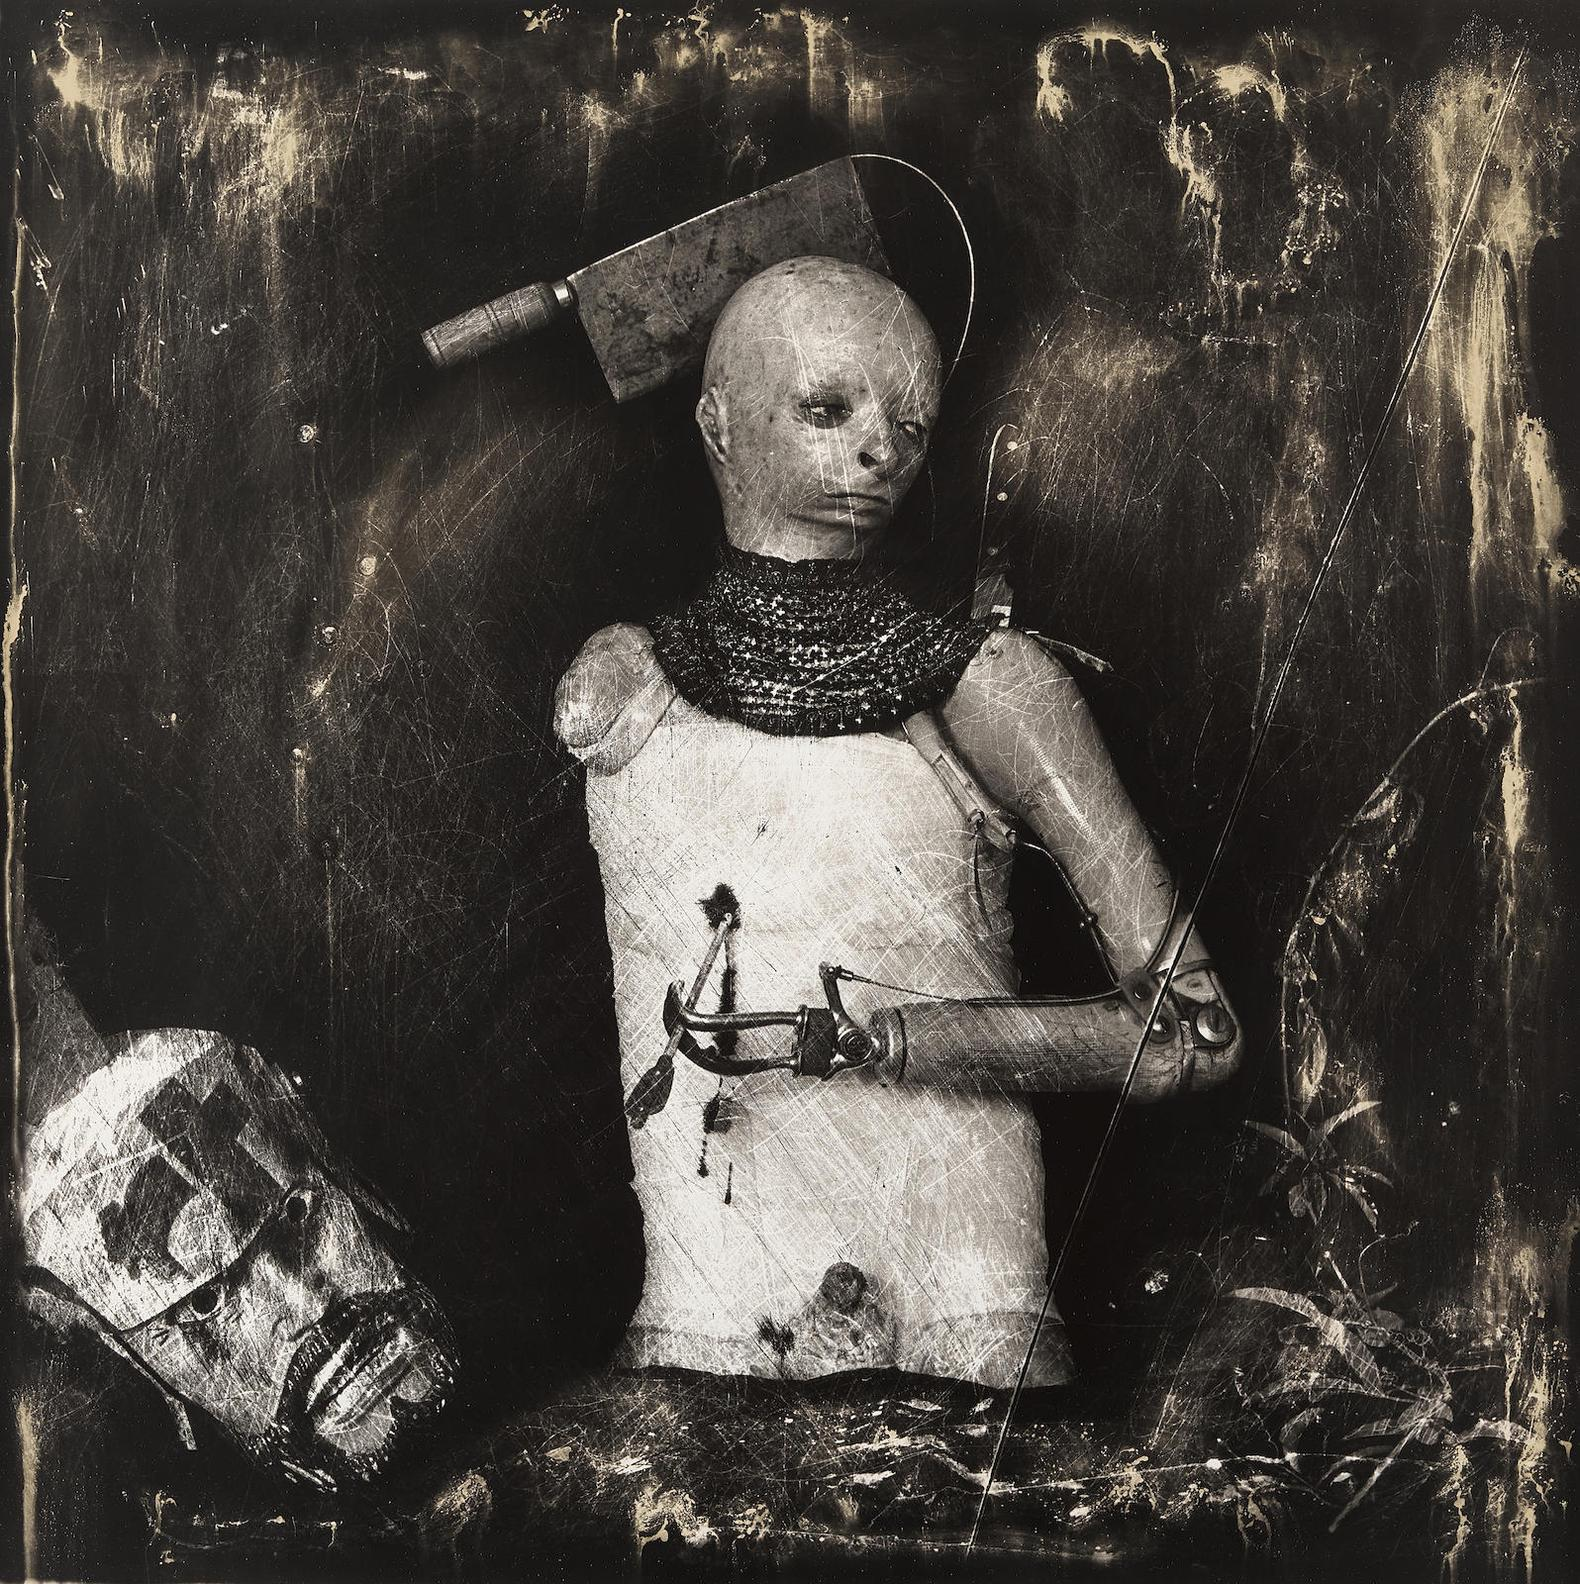 Joel-Peter Witkin-Un Santo Oscuro, Los Angeles-1987